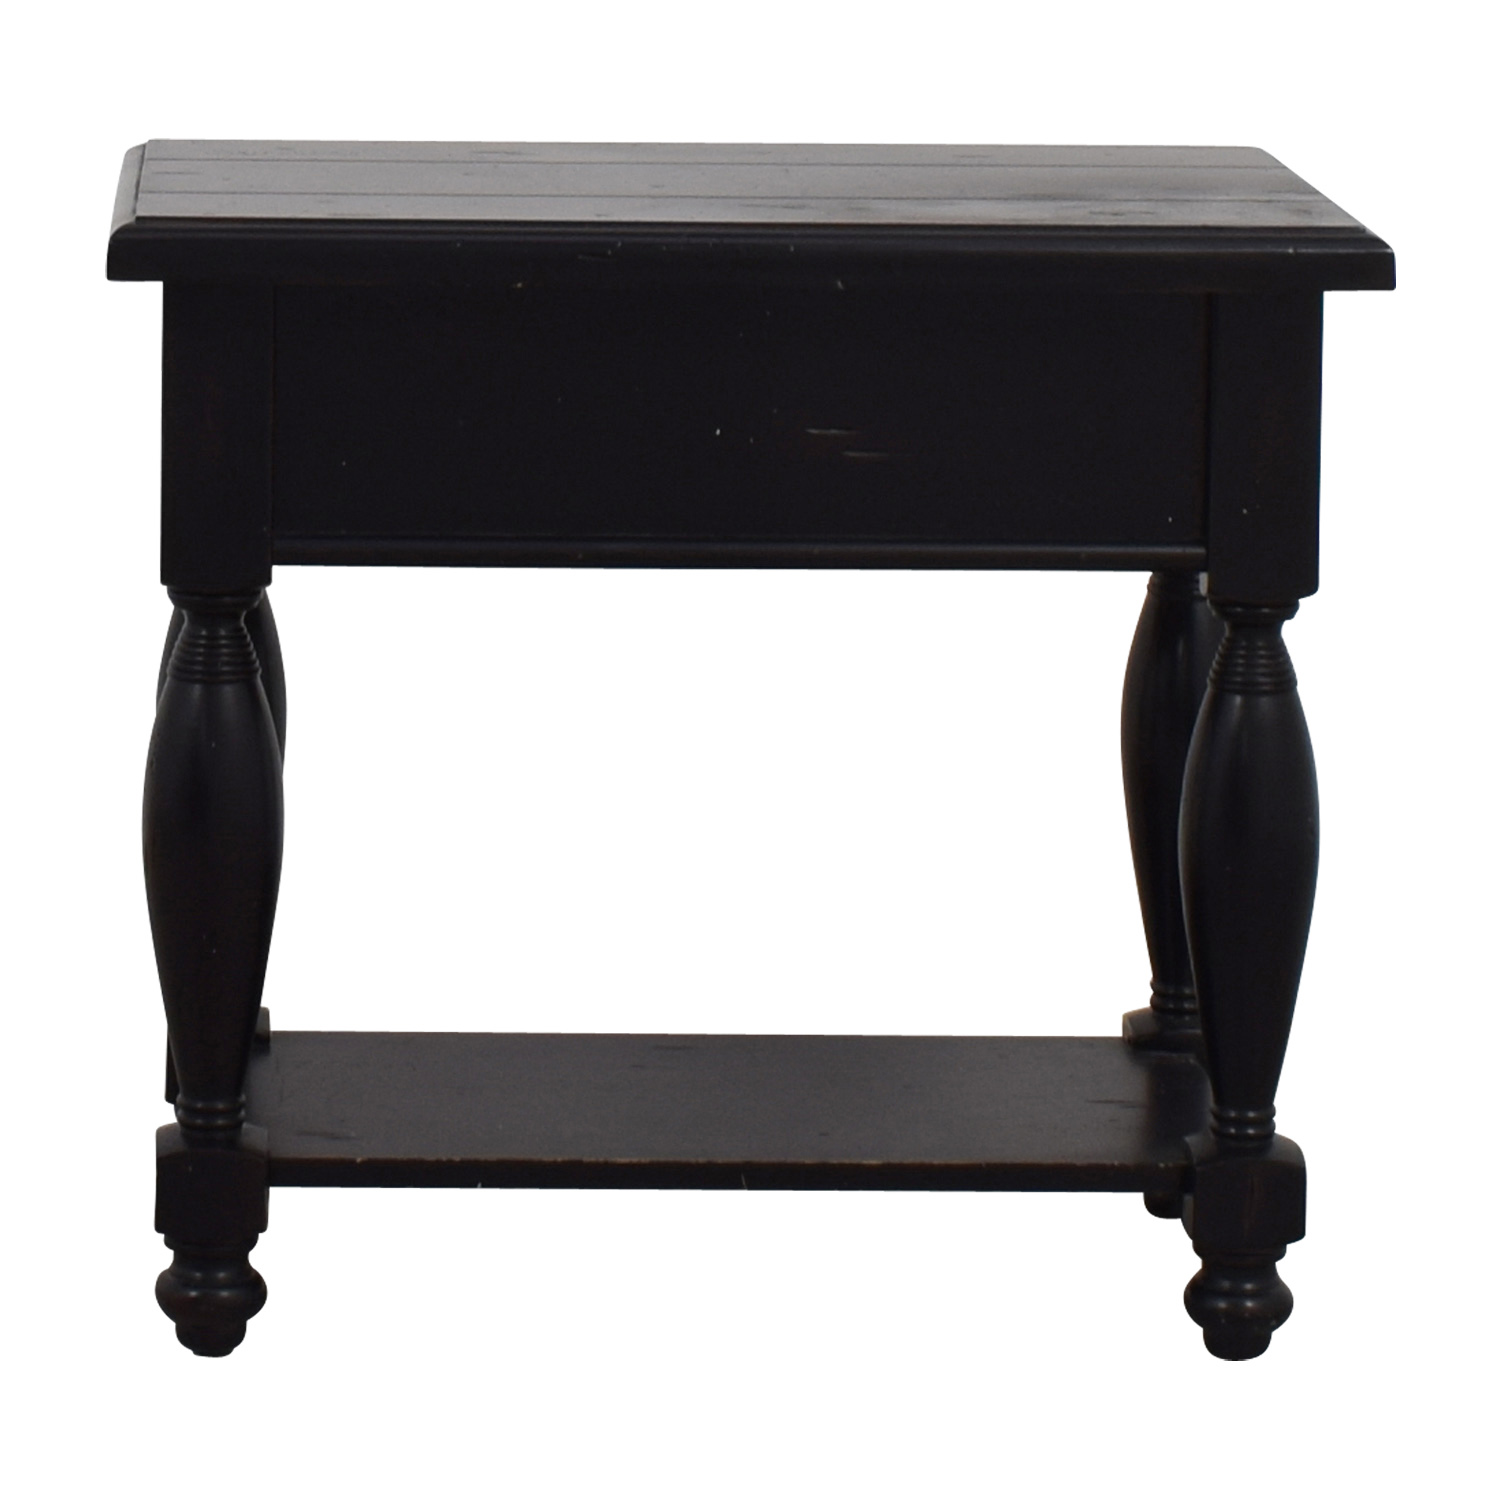 Raymour & Flanigan Raymour & Flanigan Black Side Table Cabinets & Sideboards